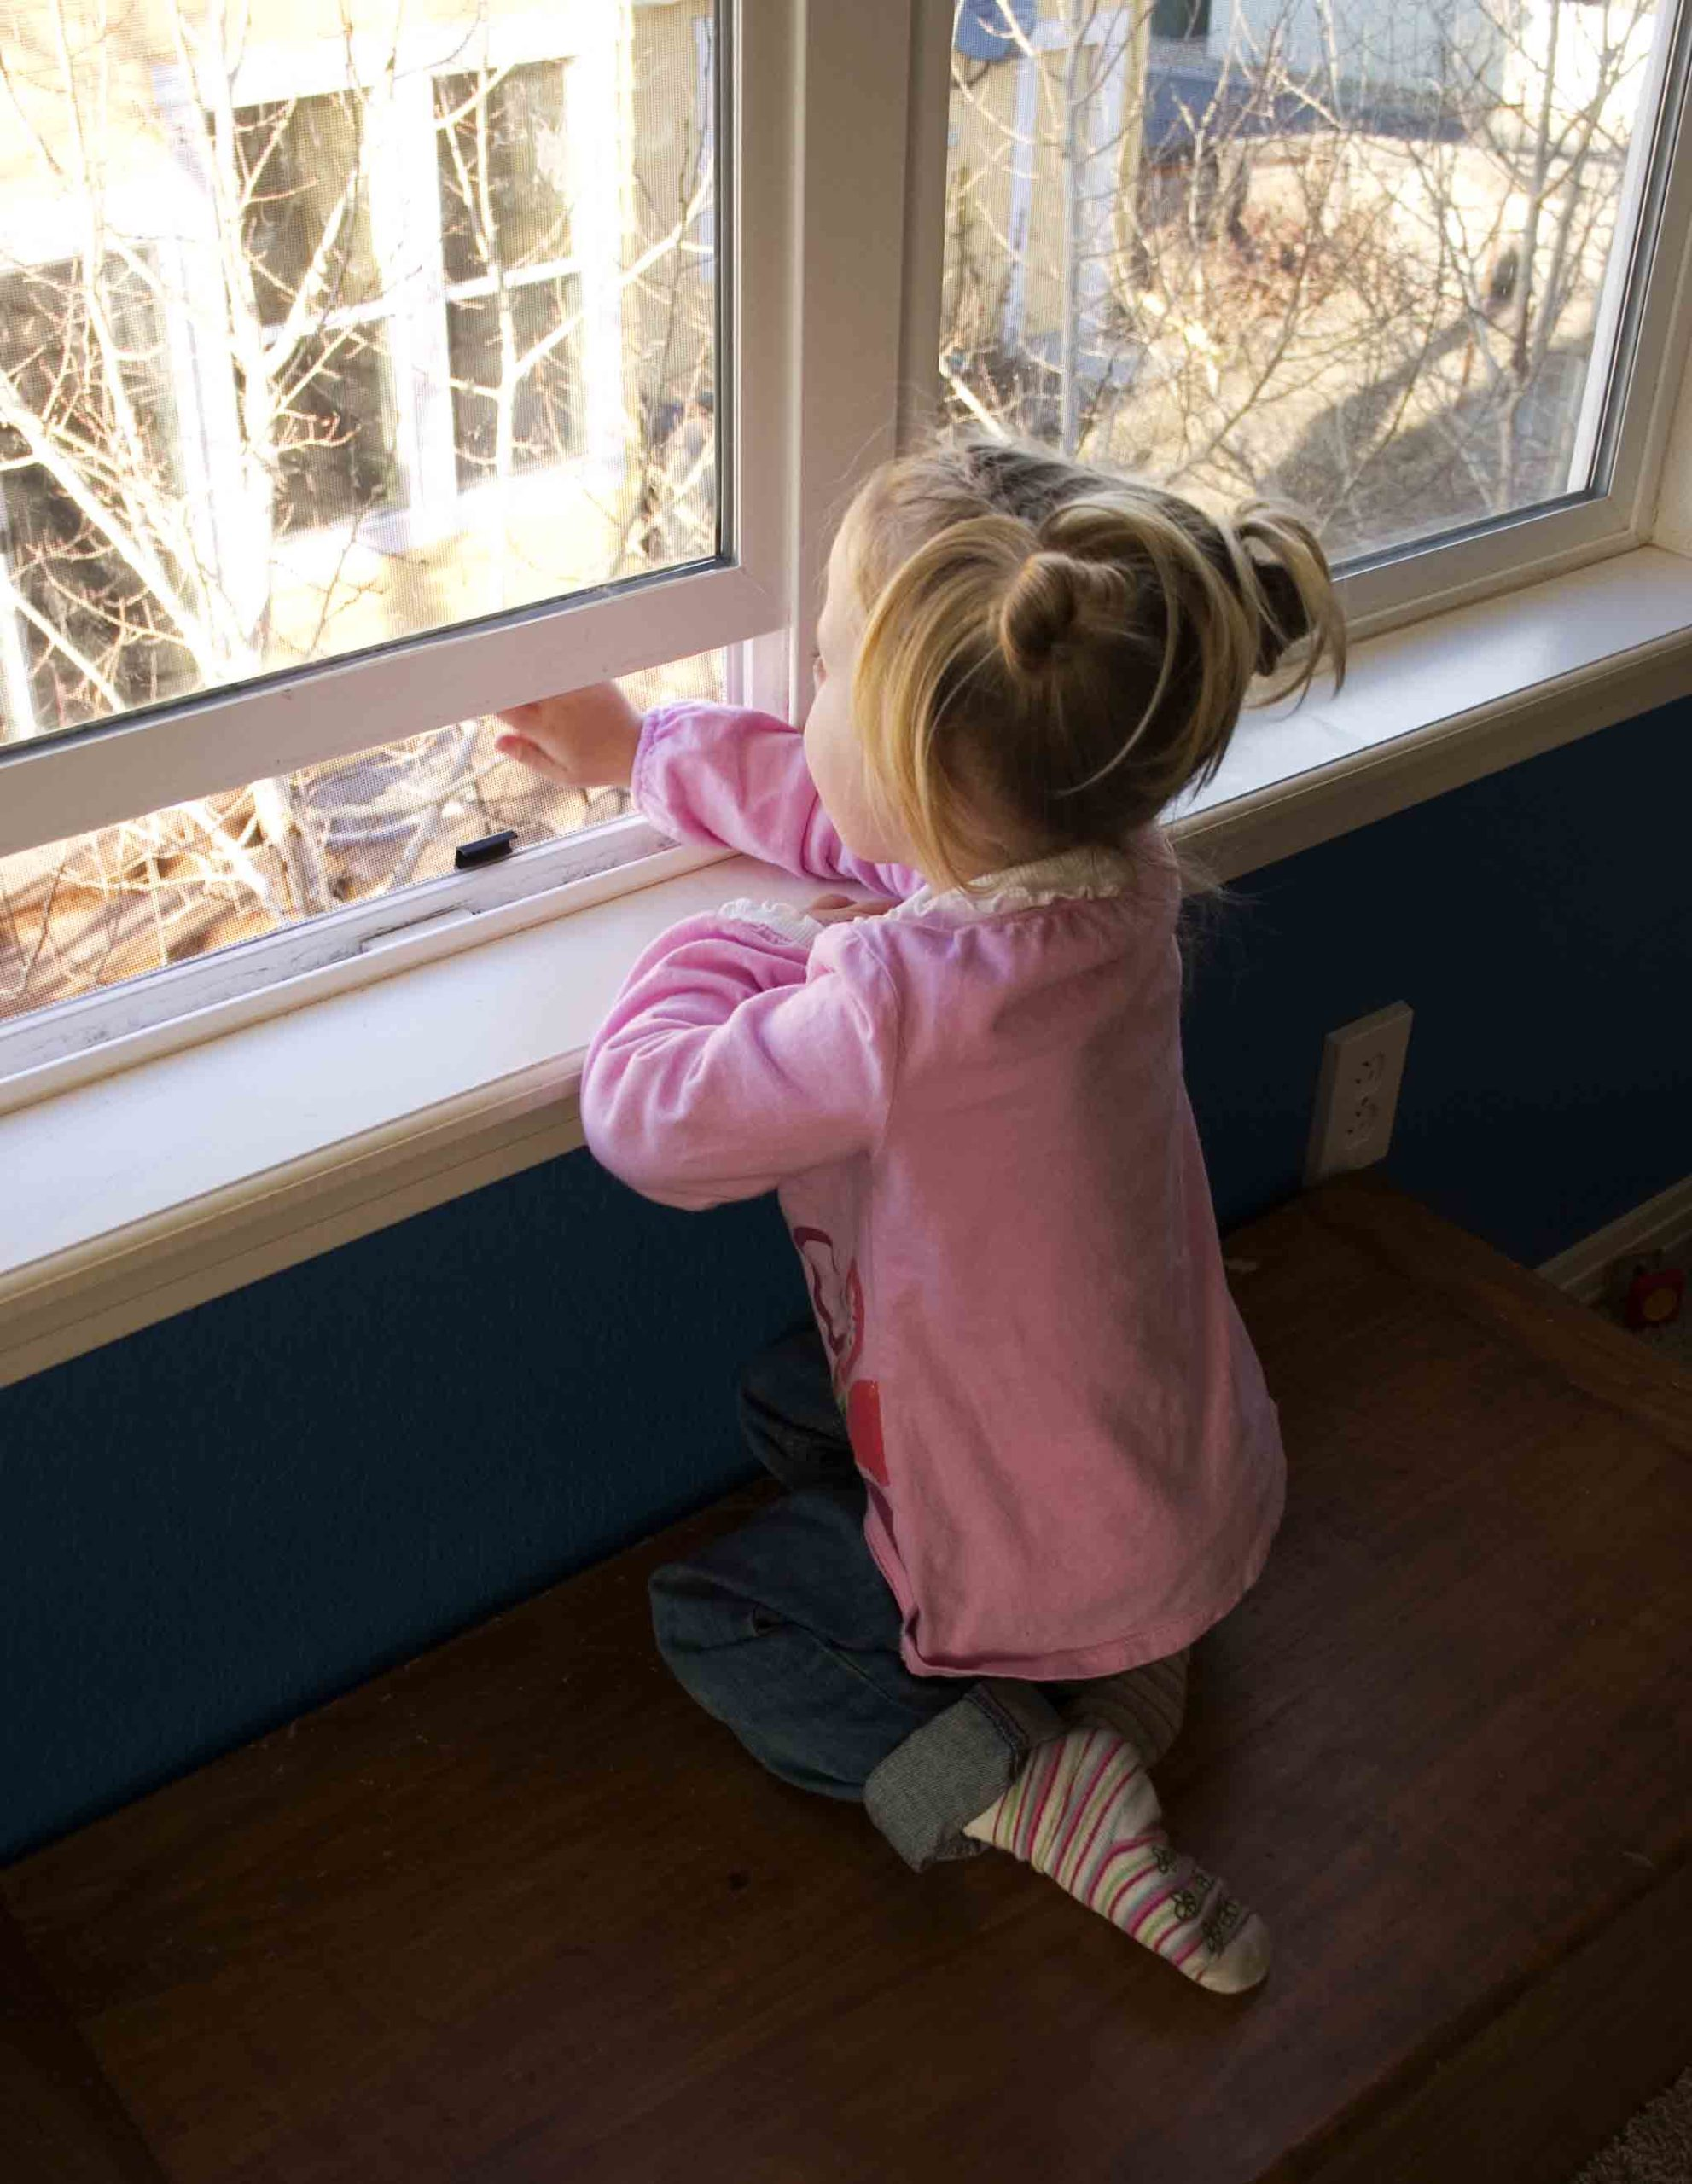 Safety first when it comes to kids and windows